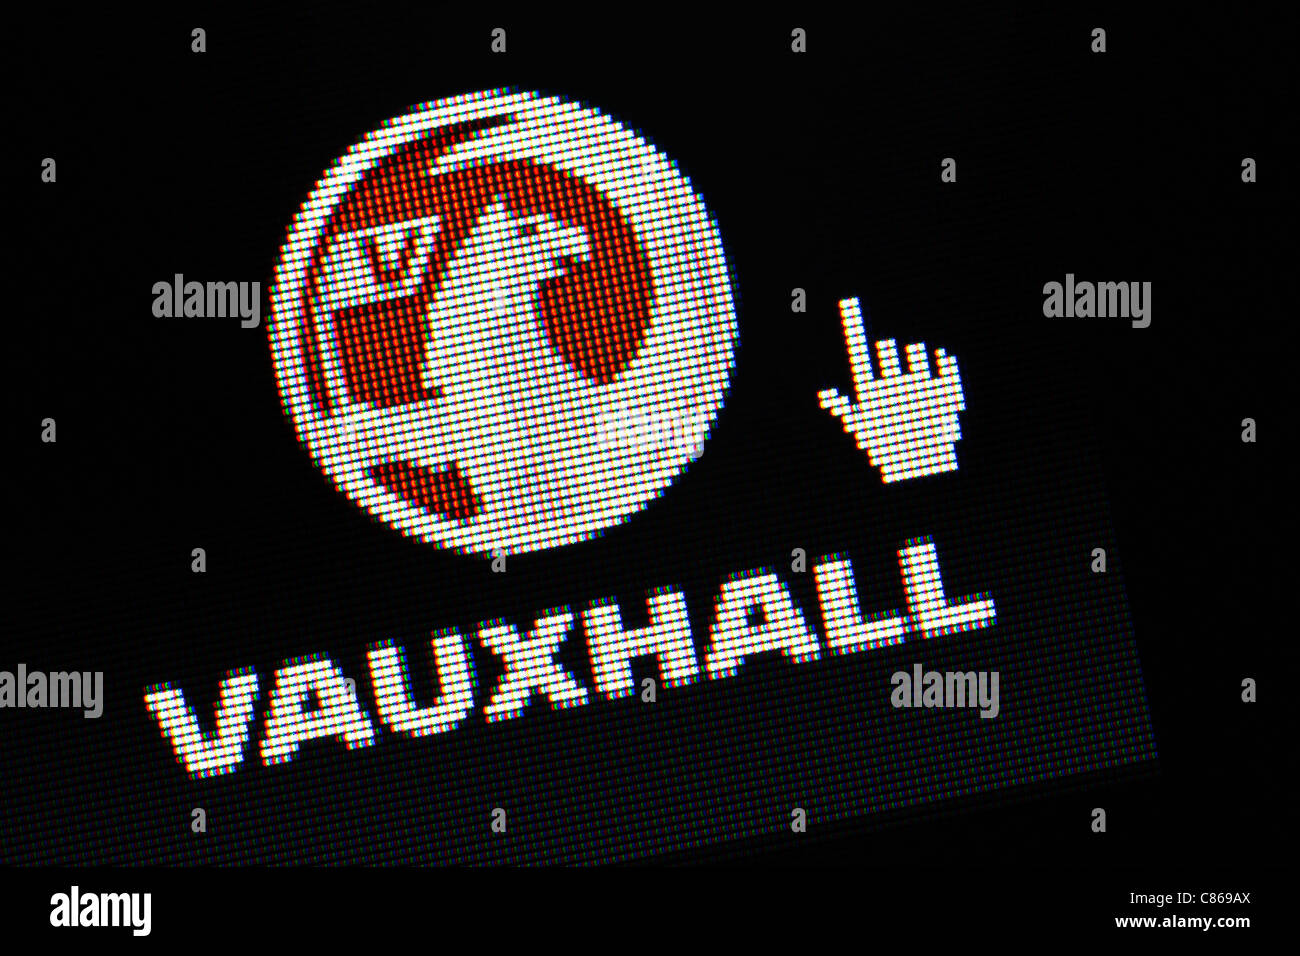 Vauxhall cars logo and website close up - Stock Image